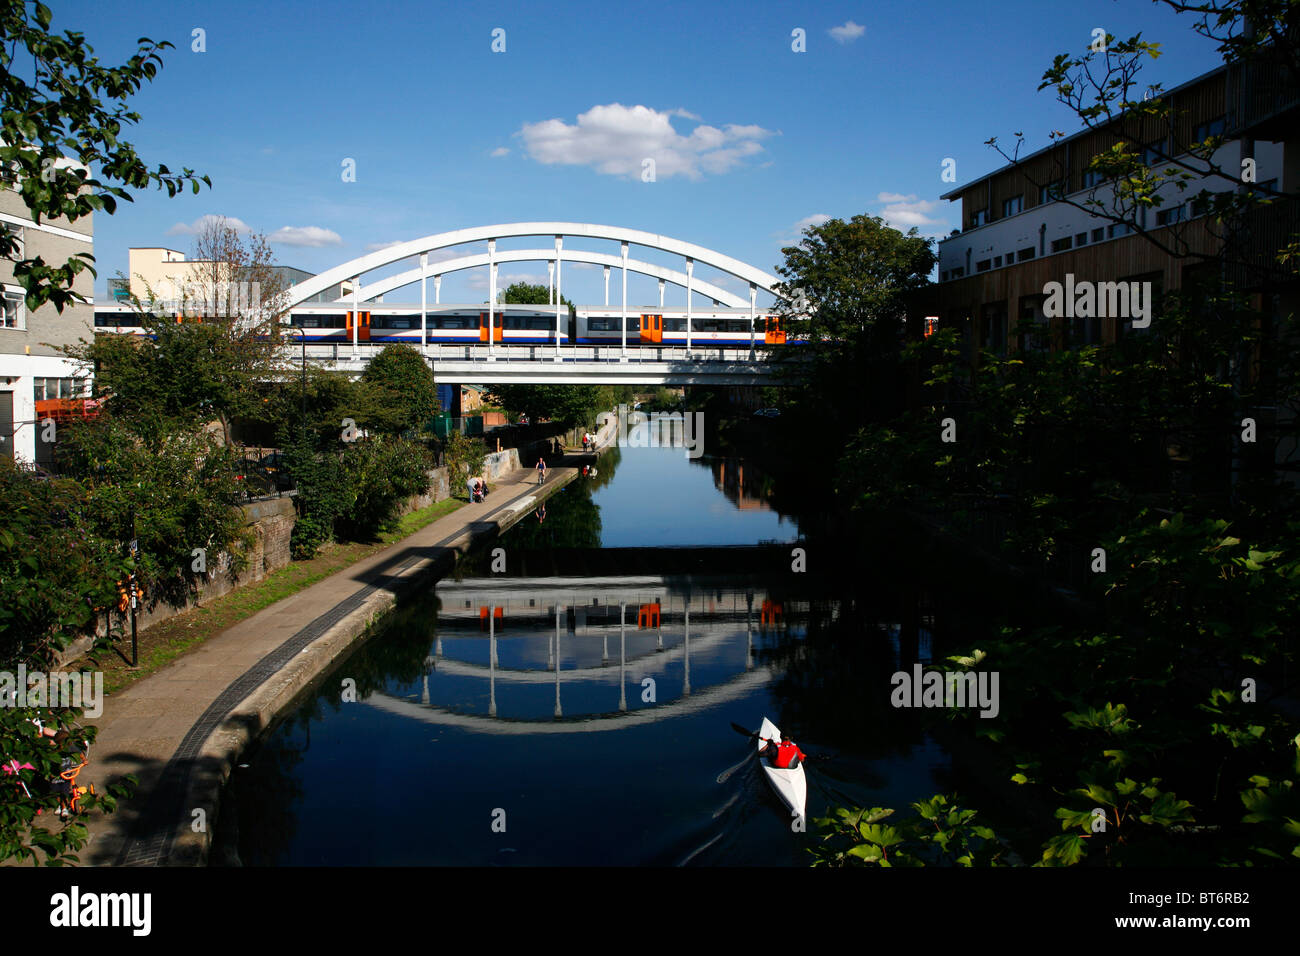 East London line (Overground) train crossing the Regent's Canal at Haggerston, London, UK - Stock Image